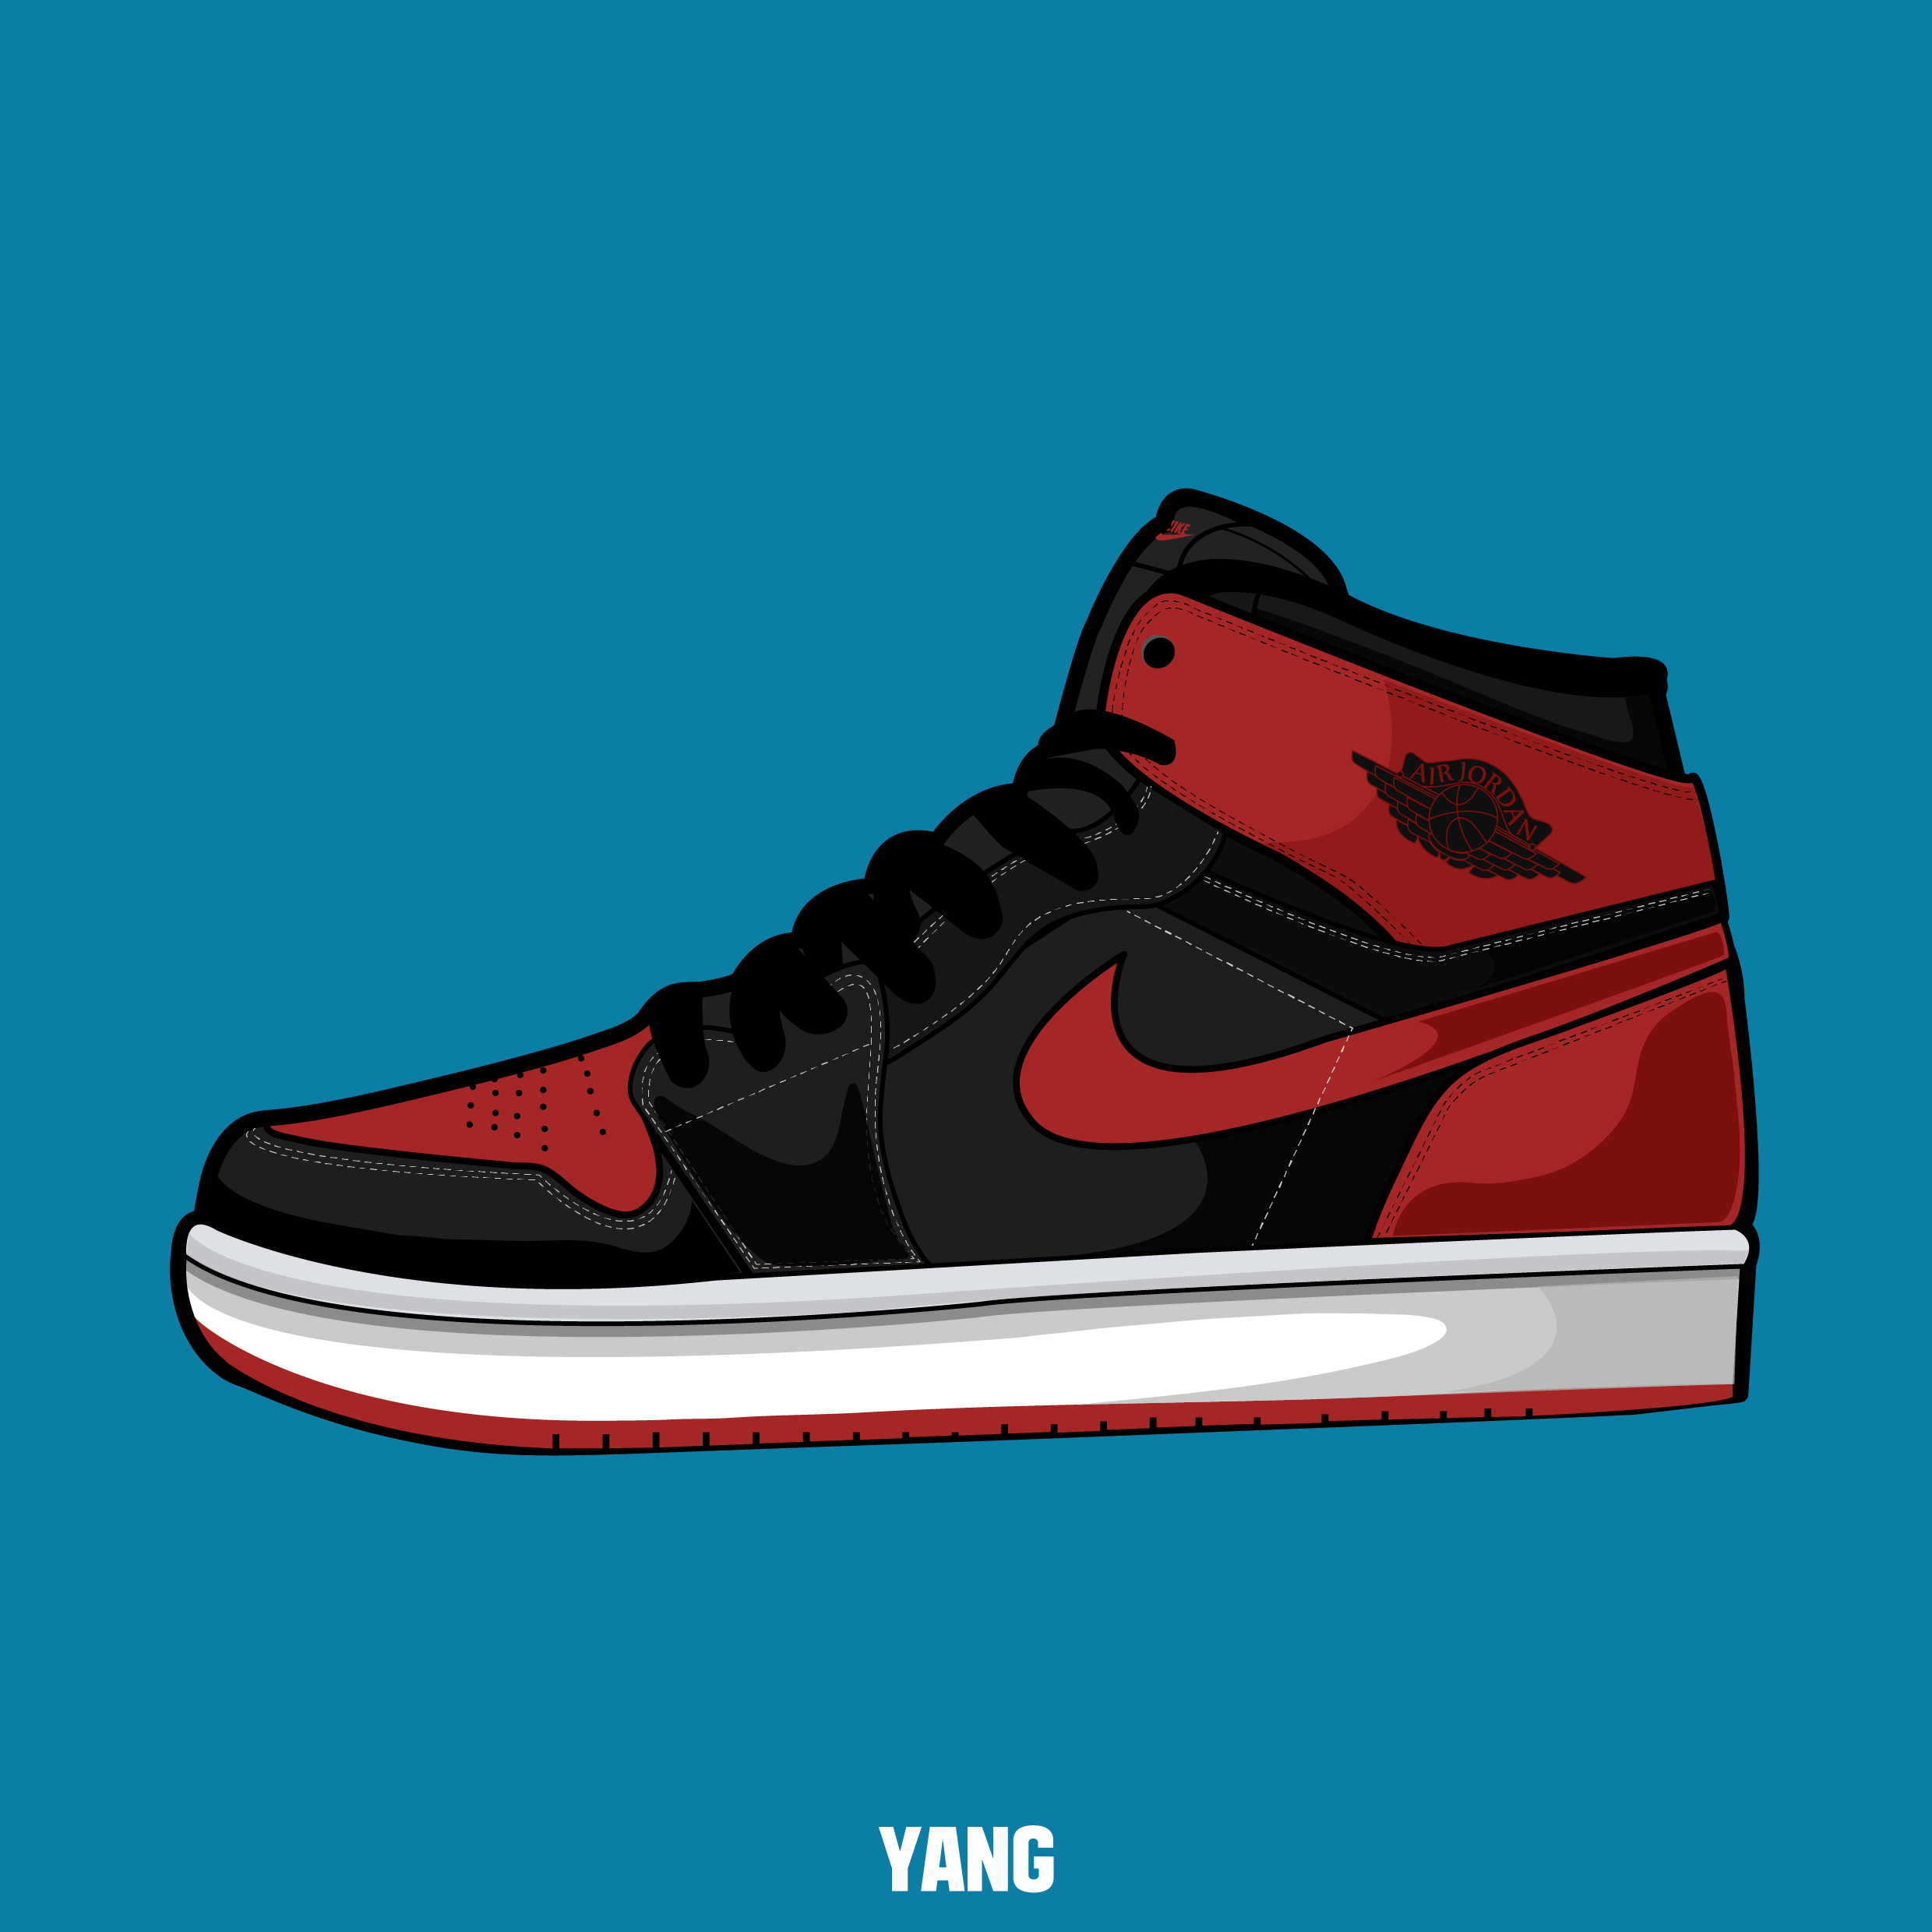 Drawn shoe jordan 1 Sneakers drawing jordan design